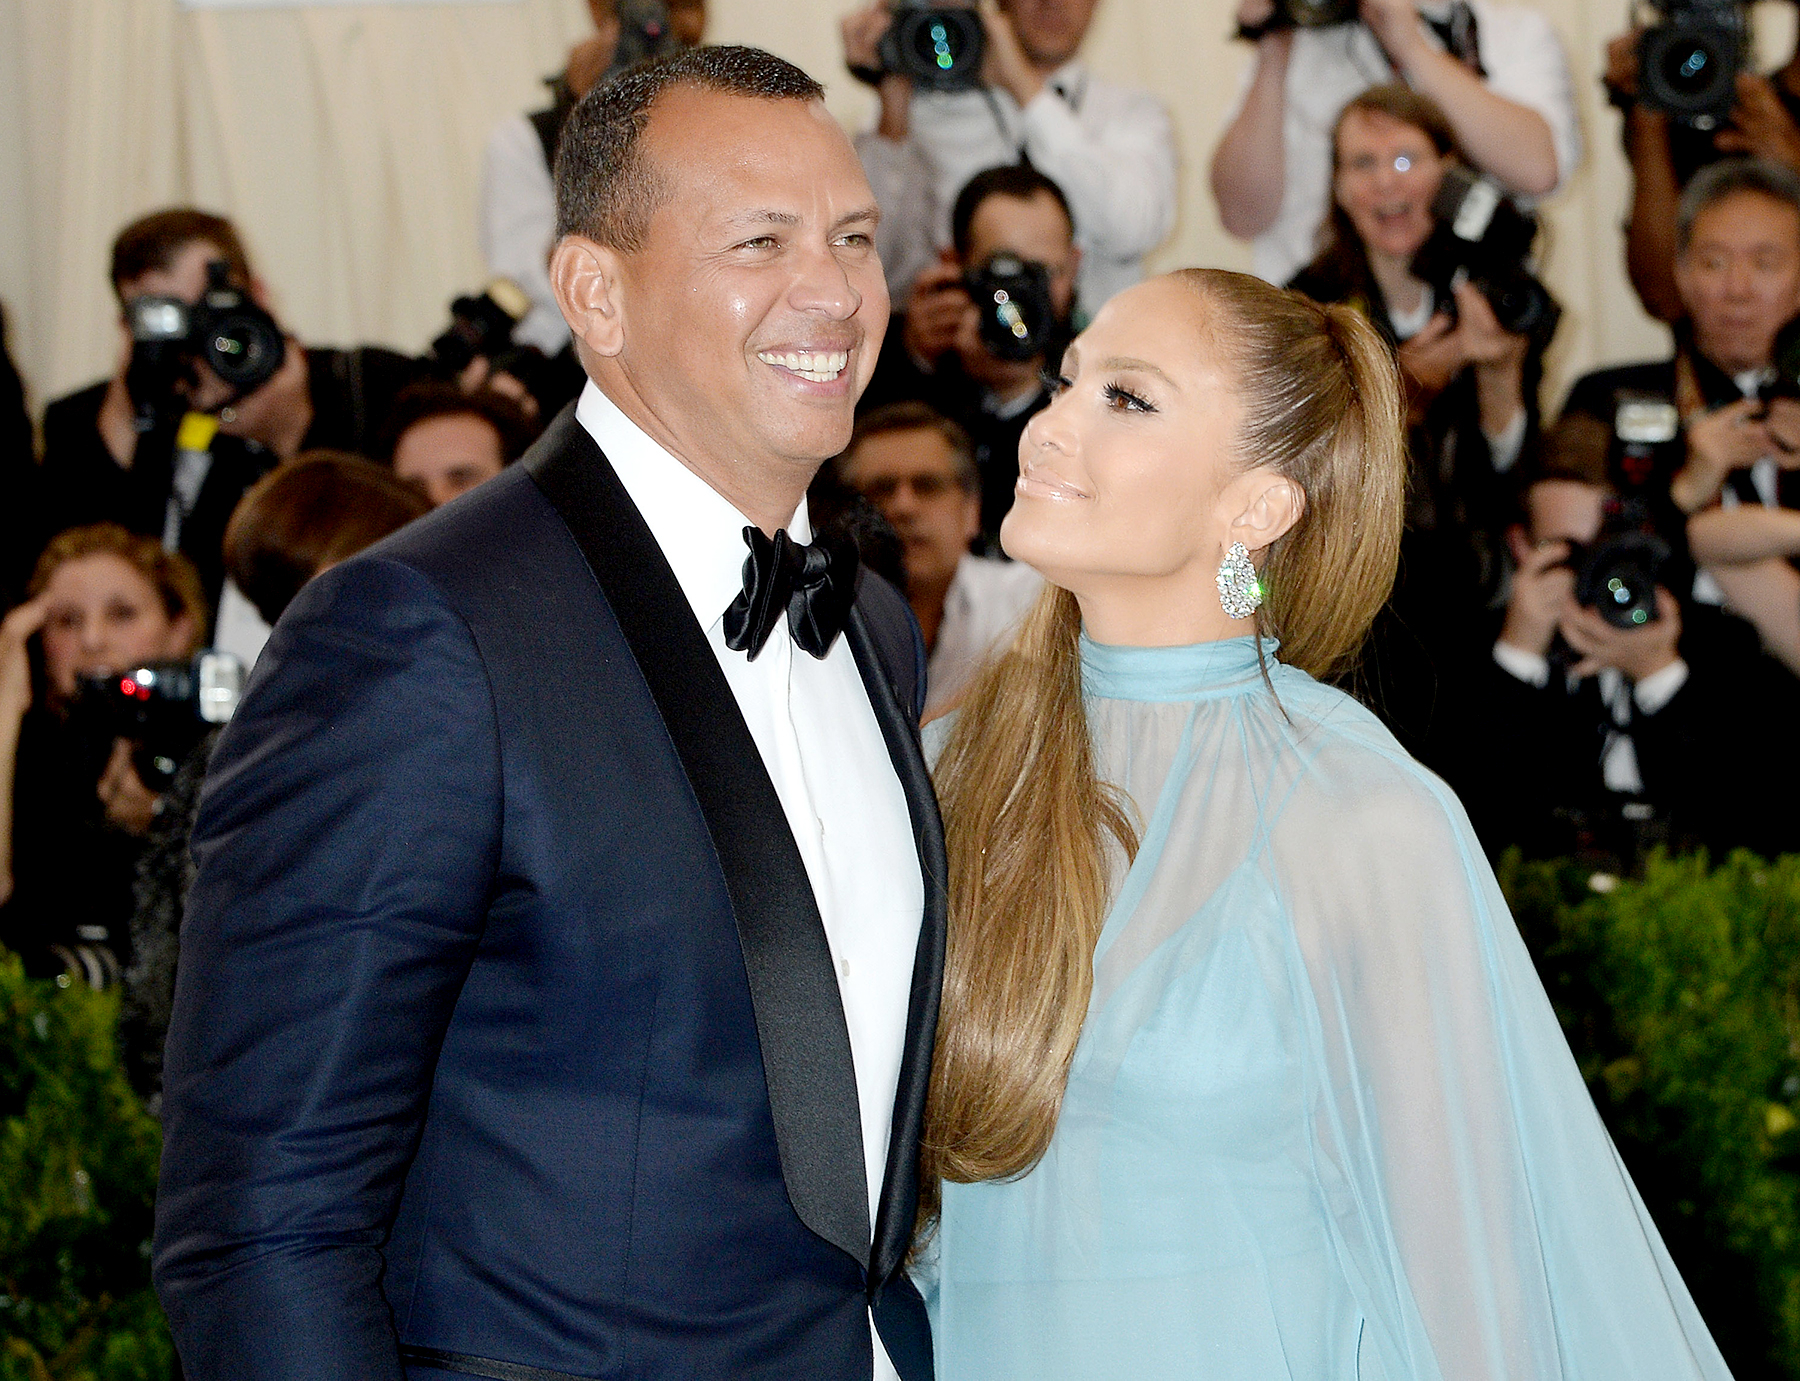 Alex Rodriguez and Jennifer Lopez arrive at 2017 Costume Institute Benefit celebrating the opening of Rei Kawakubo/Comme des Garçons: Art of the In-Between at the Metropolitan Museum of Art in New York City, New York on May 1, 2017.